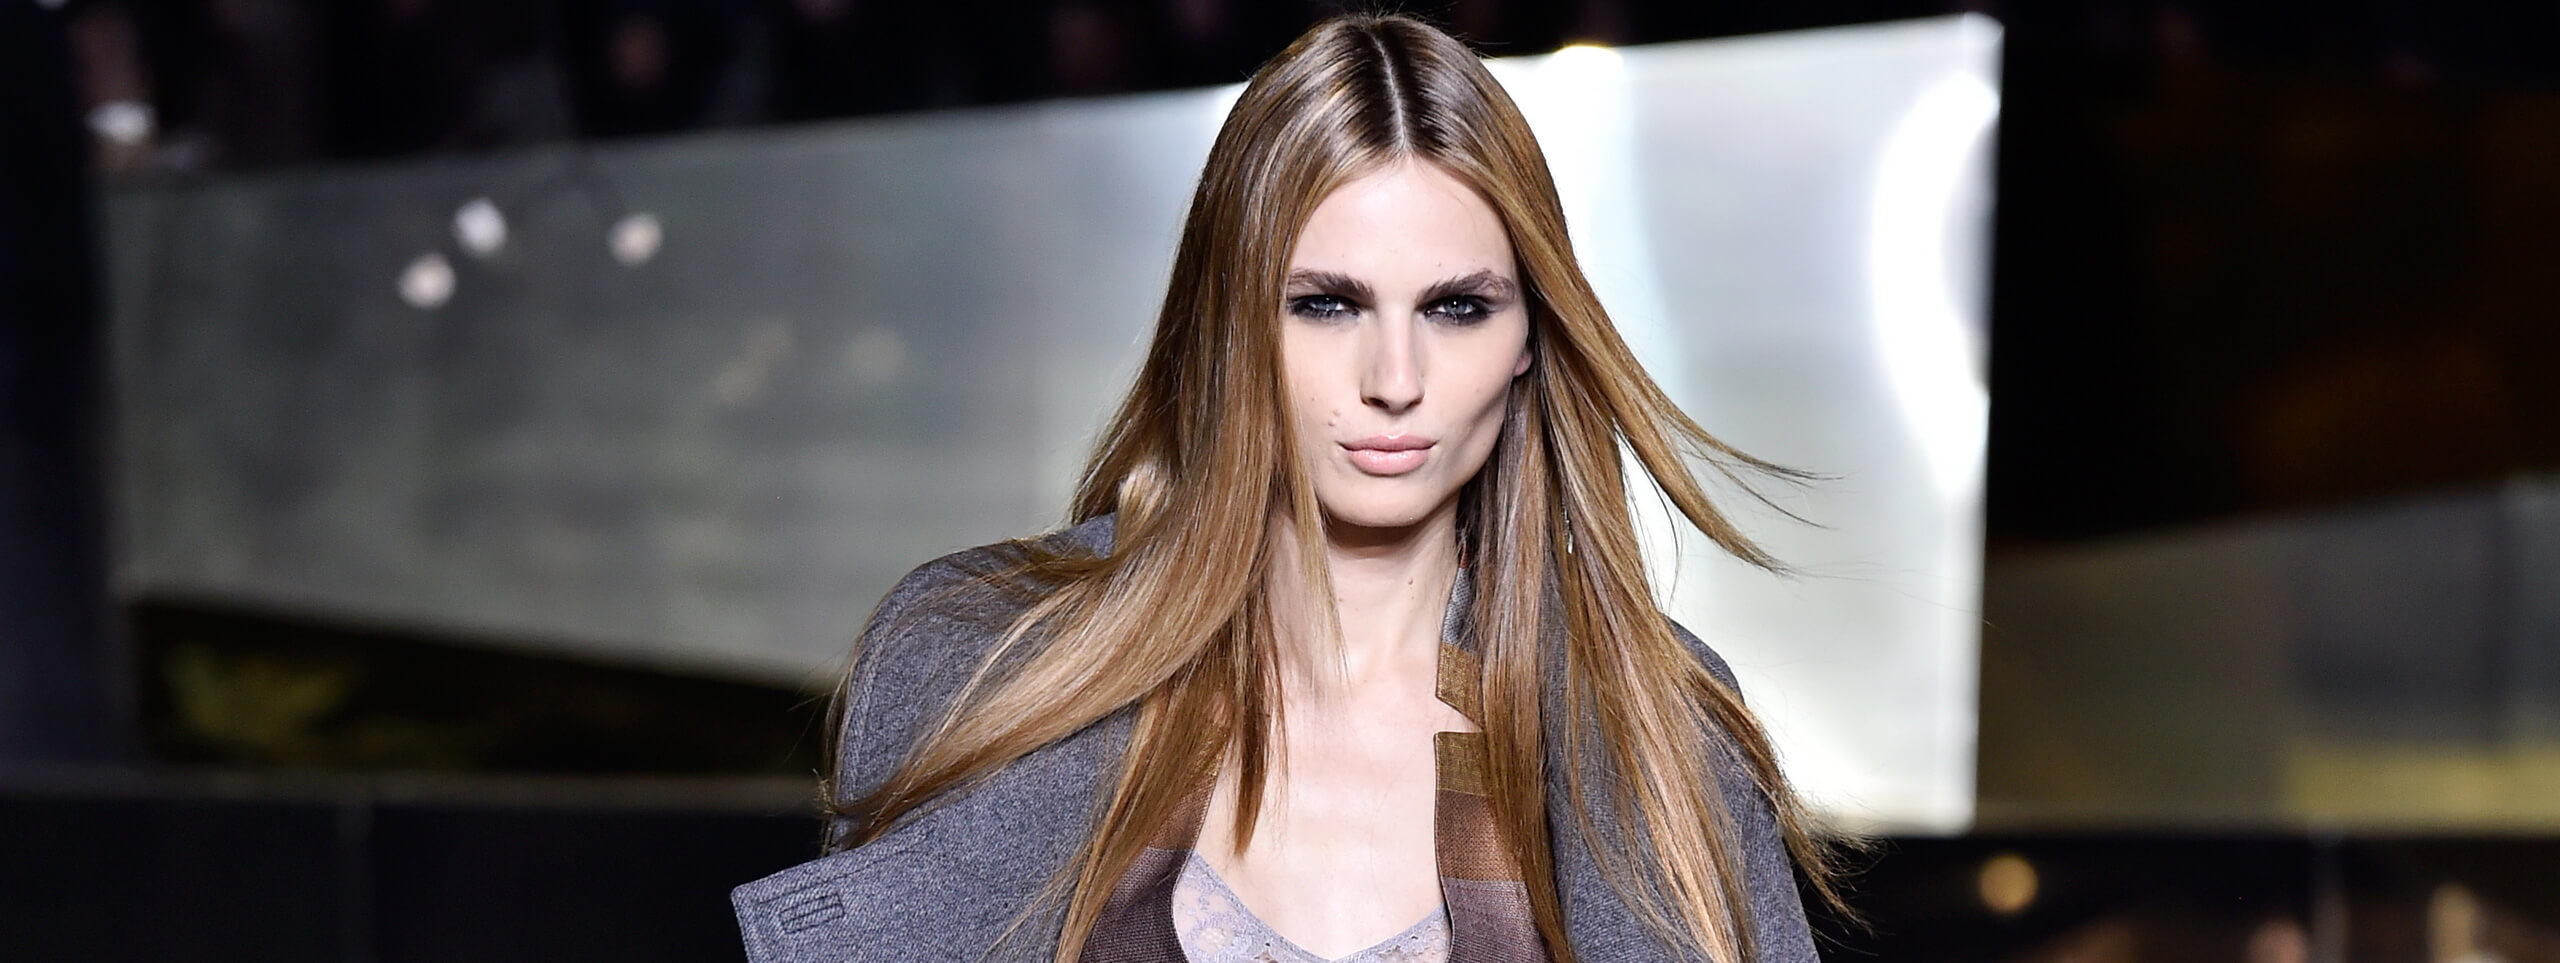 Model with long straight hairstyle